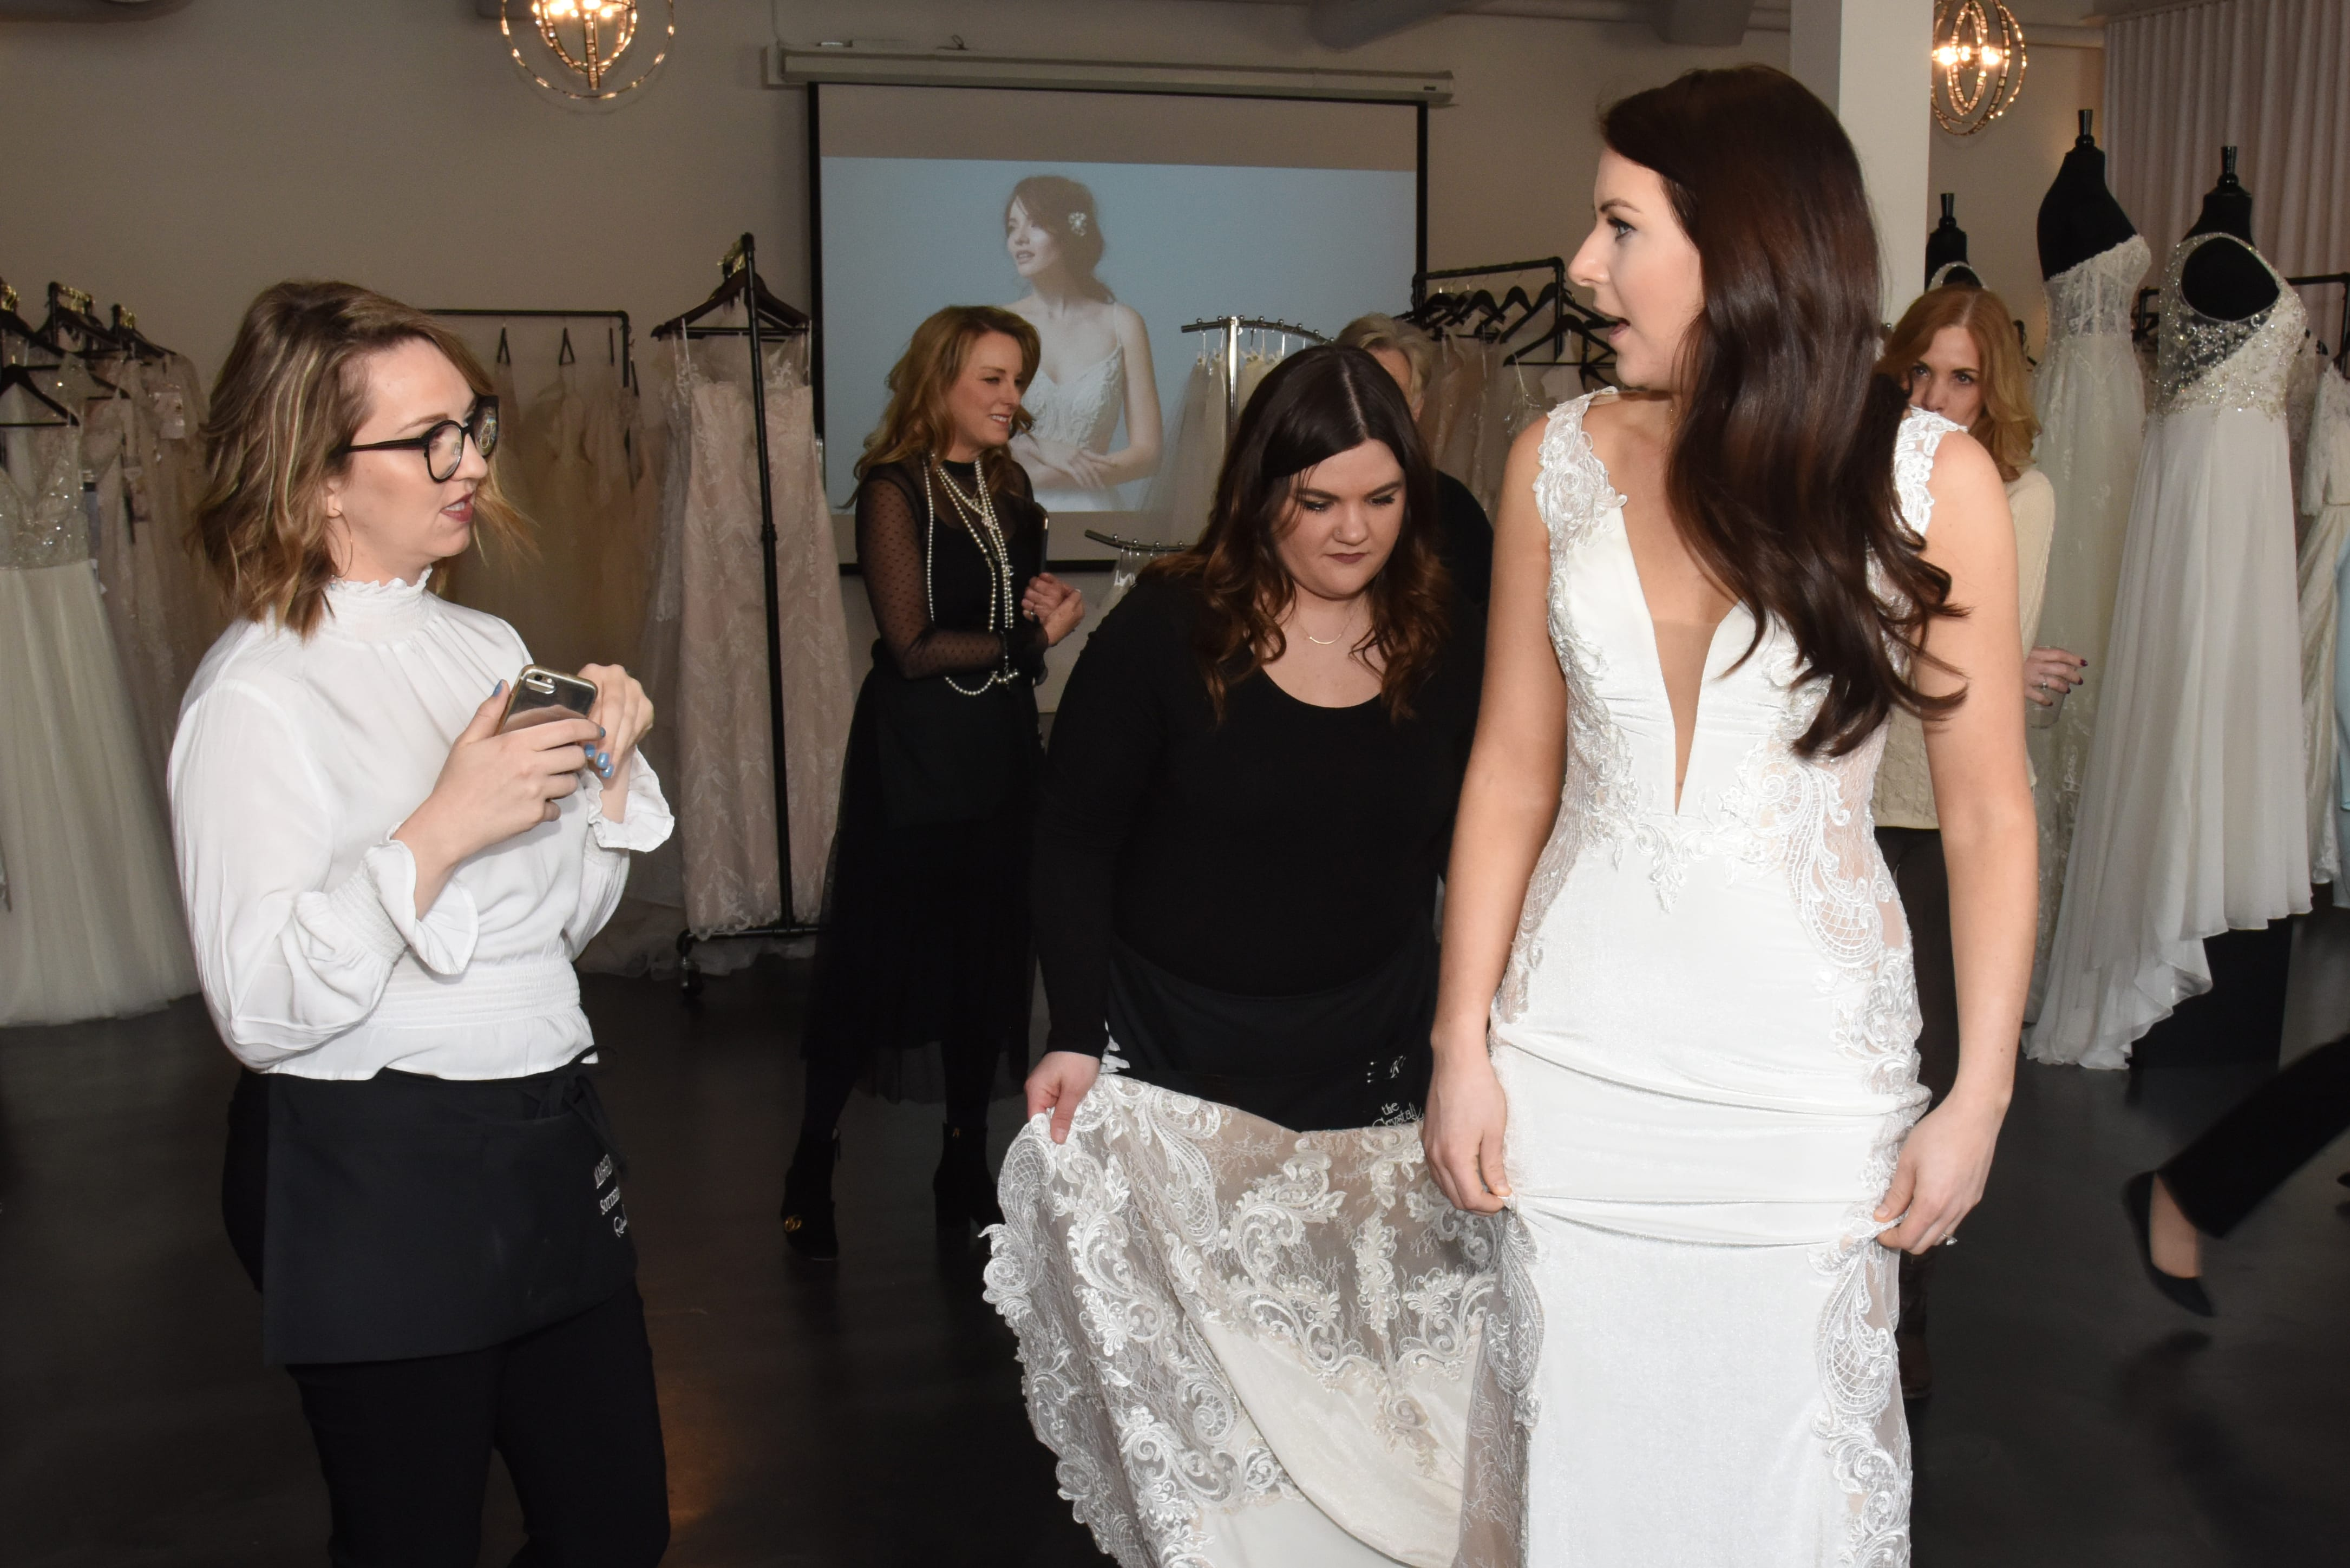 Maid of Honor Etiquette for Wedding Dress Shopping